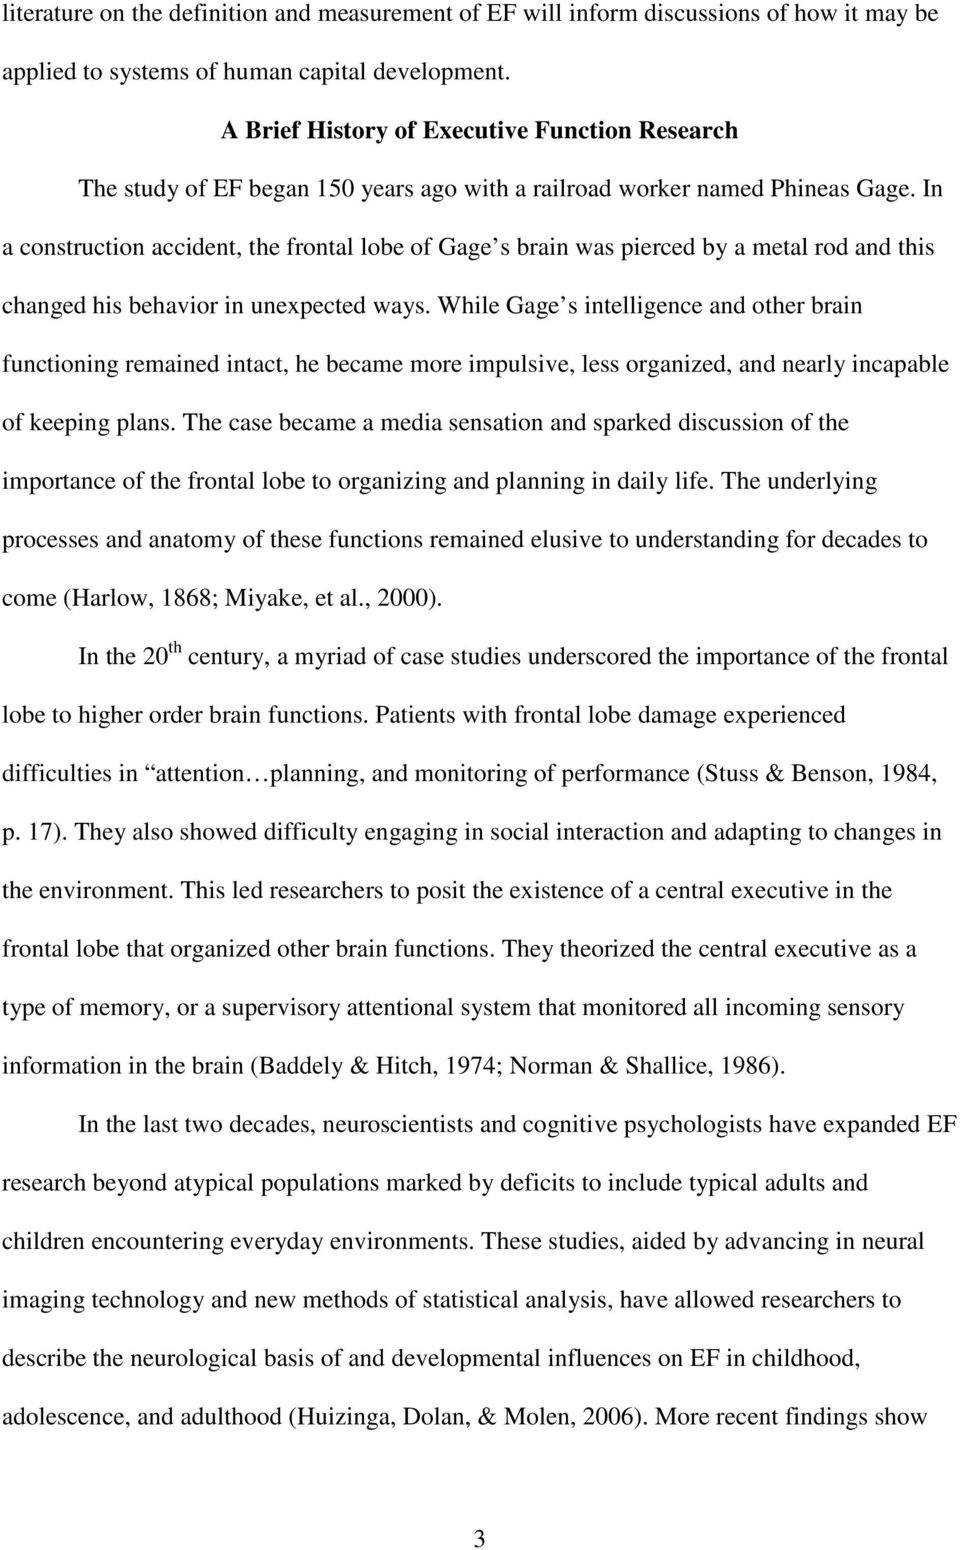 In a construction accident, the frontal lobe of Gage s brain was pierced by a metal rod and this changed his behavior in unexpected ways.